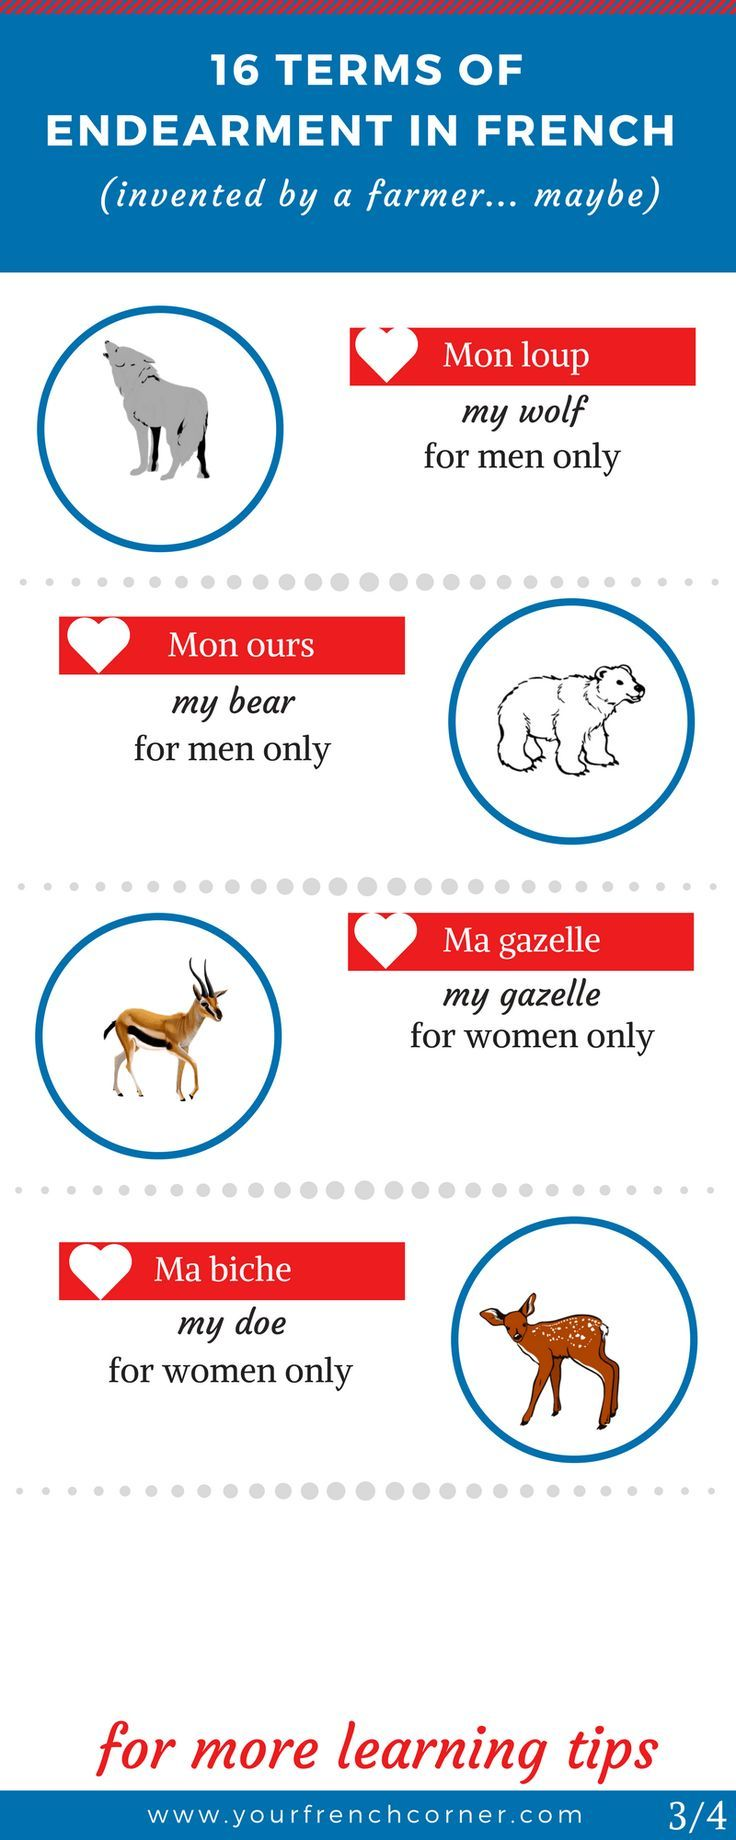 16 Unusual Endearment Terms In French (invented by a farmer… maybe) #frenchwords